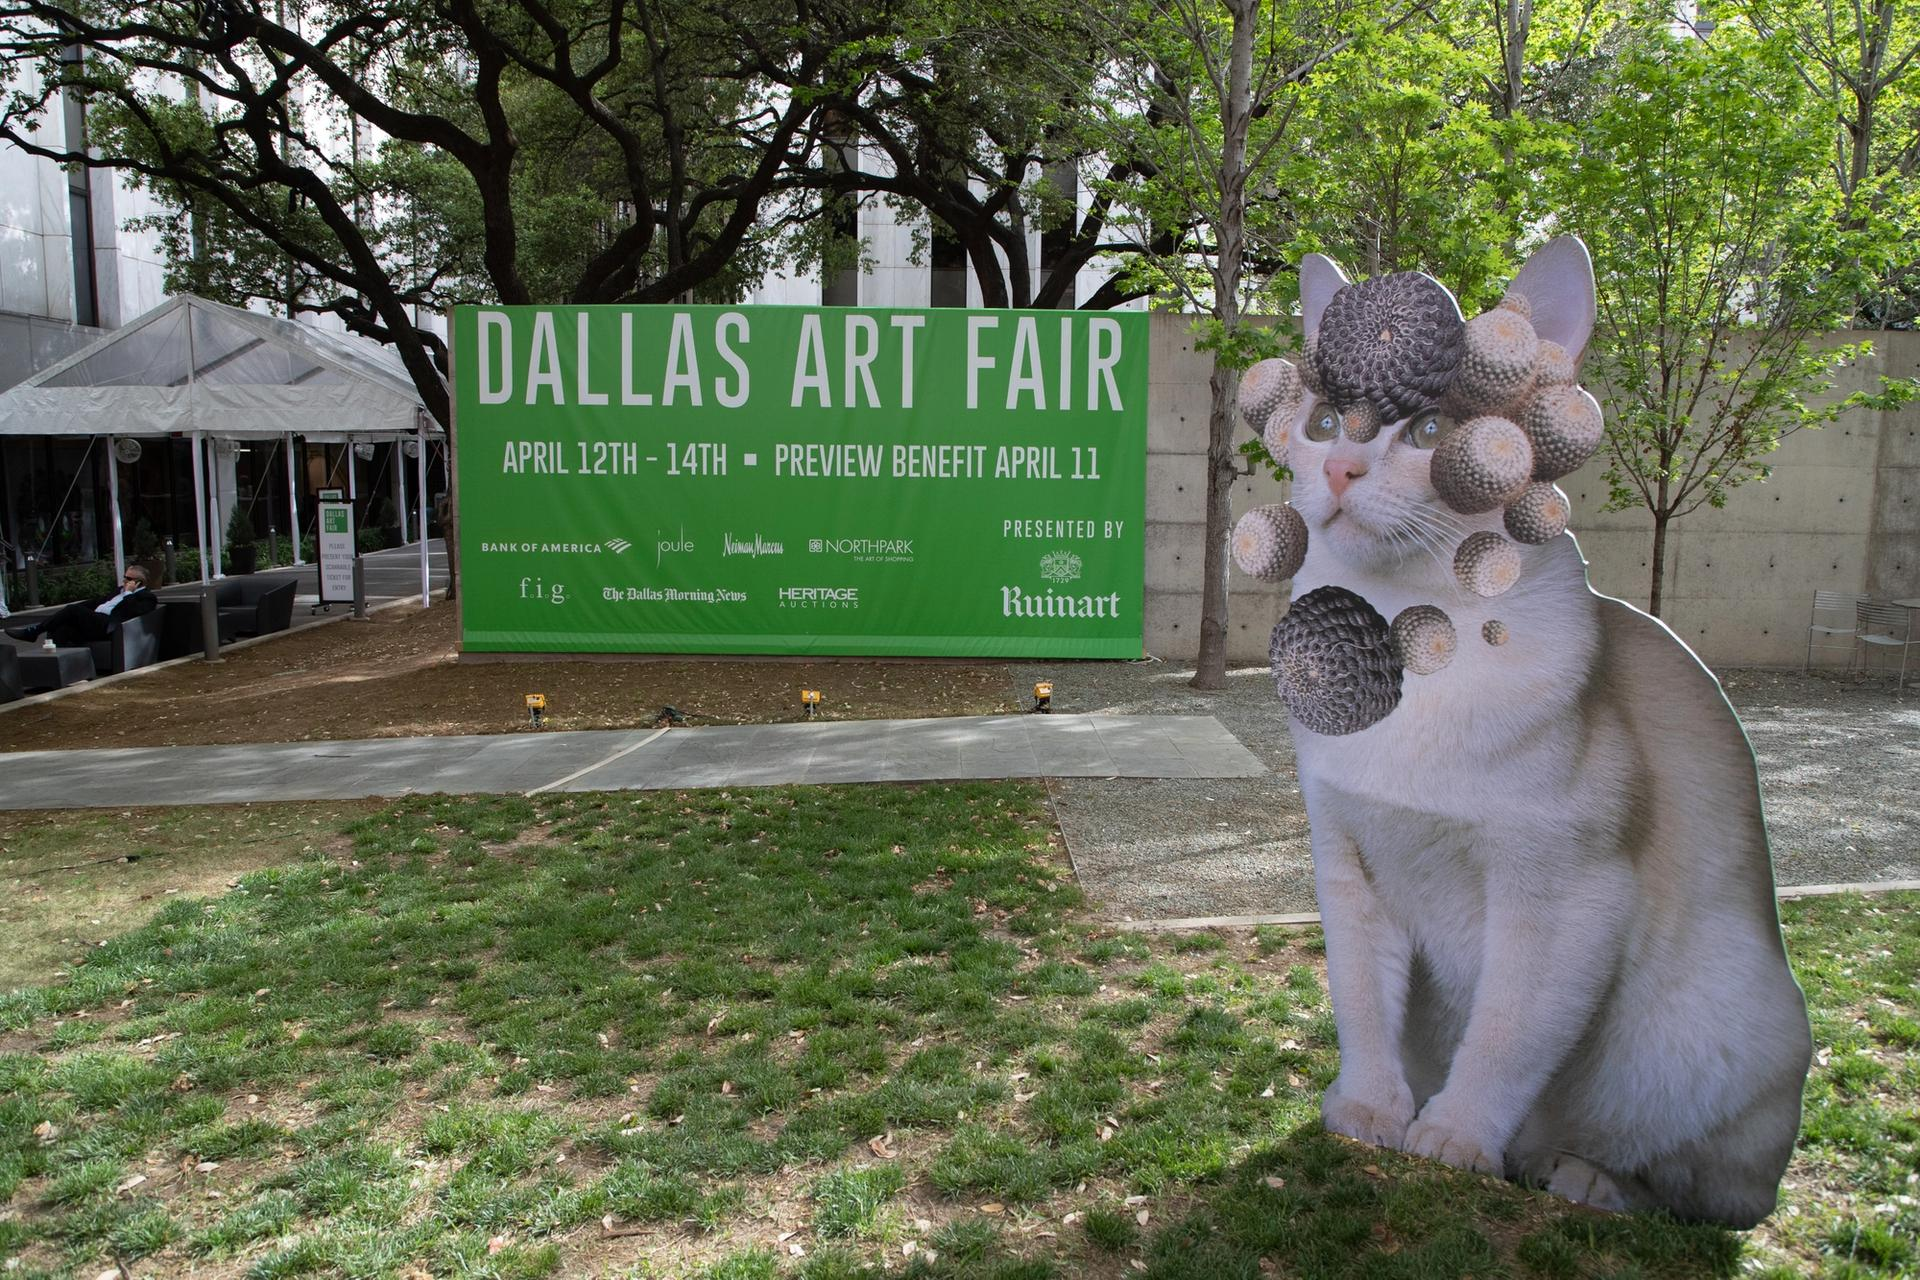 Chicago-based artist Stephen Eichorn's cat-and-plant sculptures greet visitors to the Dallas Art Fair. Photo by Exploredinary, courtesy of the Dallas Art Fair